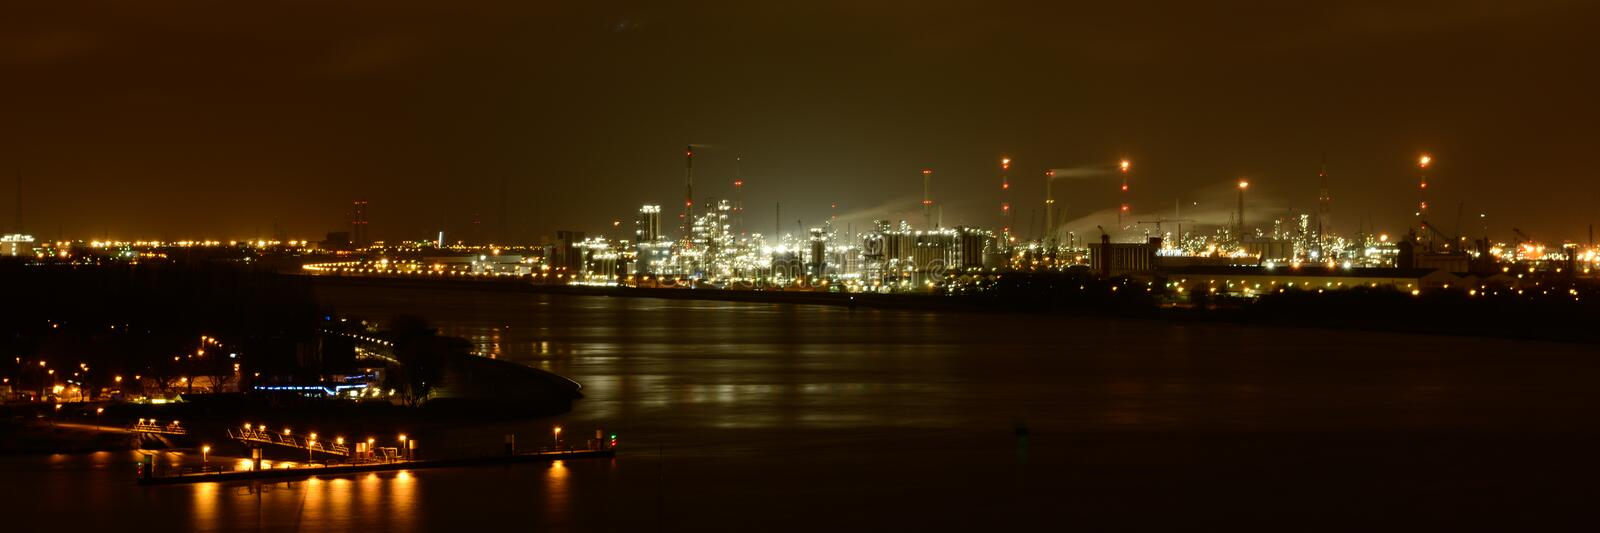 Port of Antwerp by night stock photo